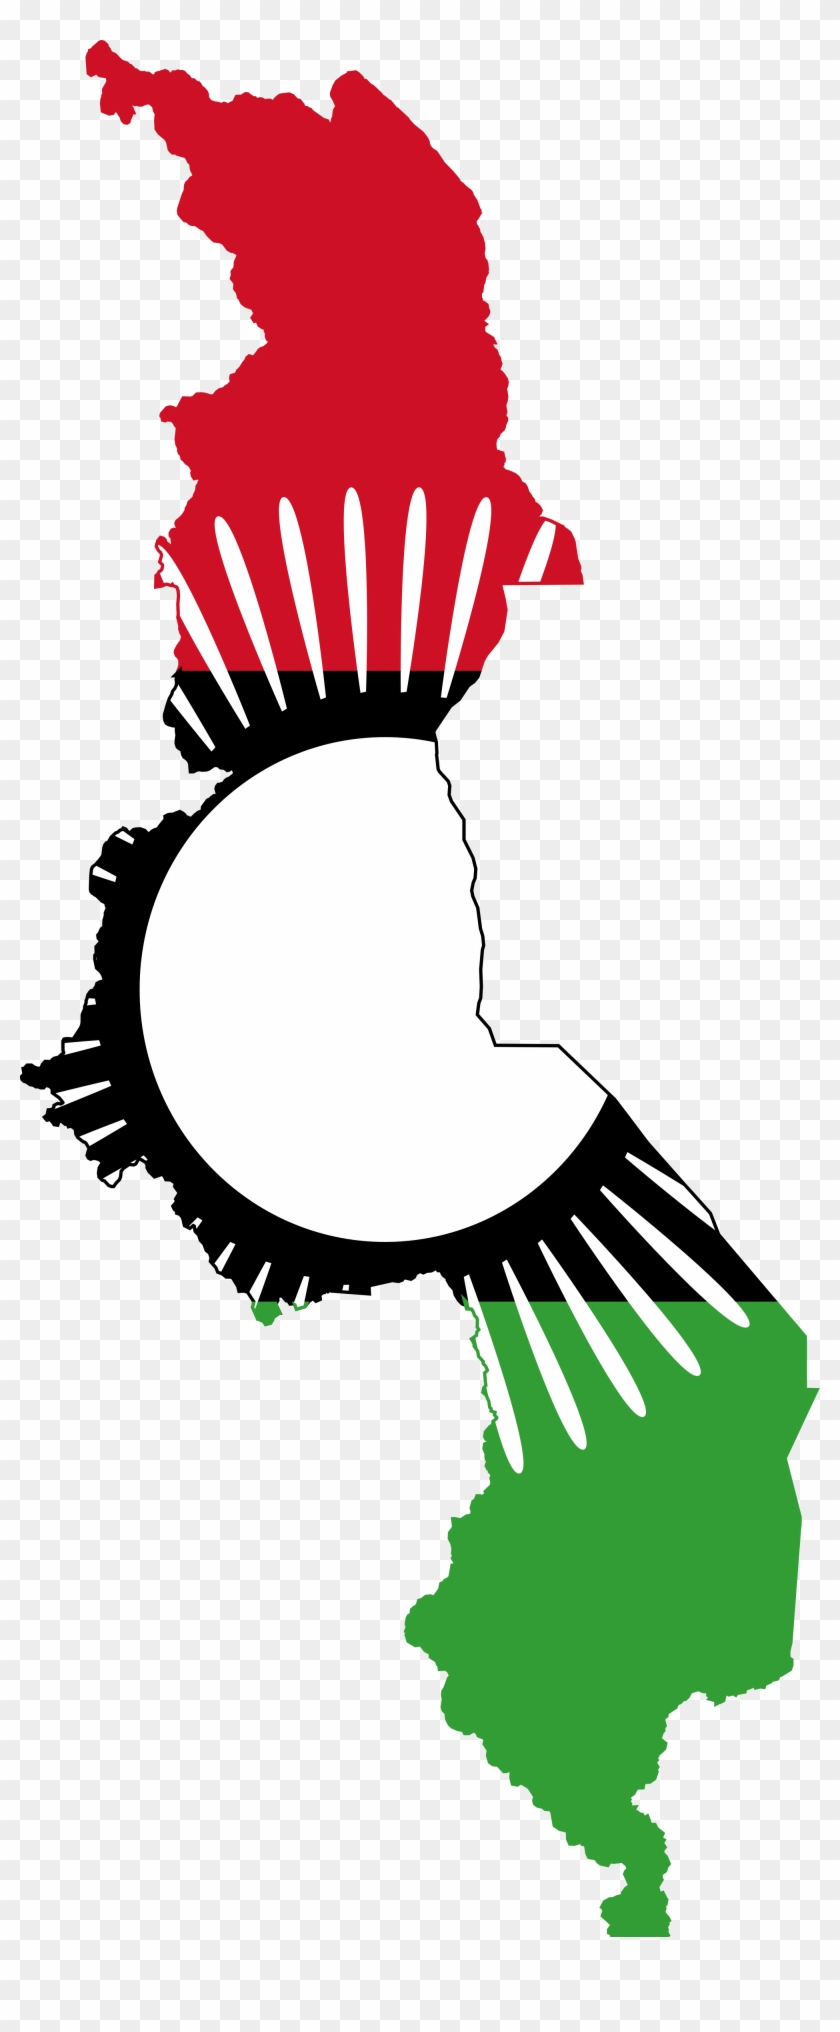 Open - Malawi Map With Flag #141495